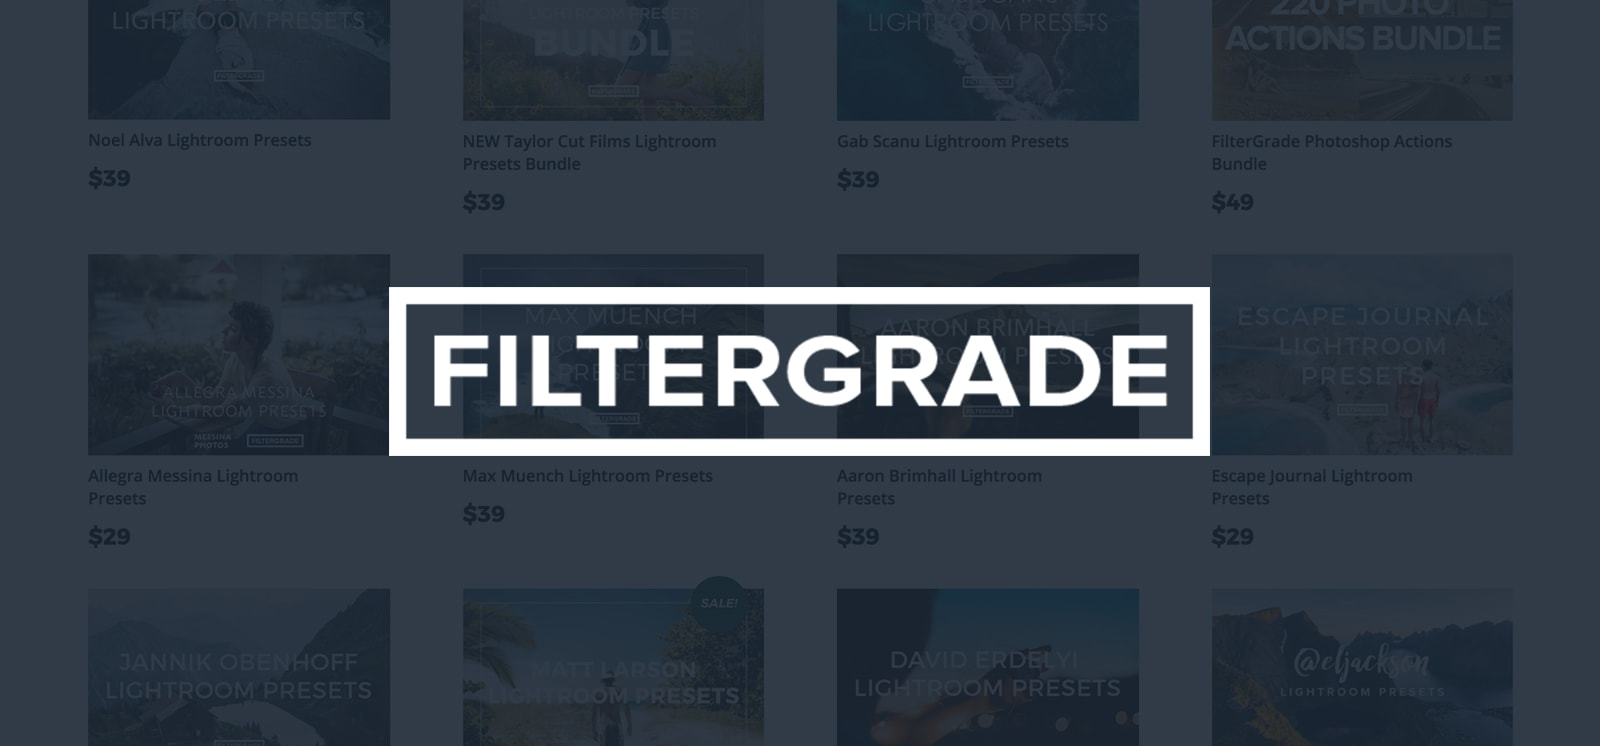 filtergrade lightroom presets